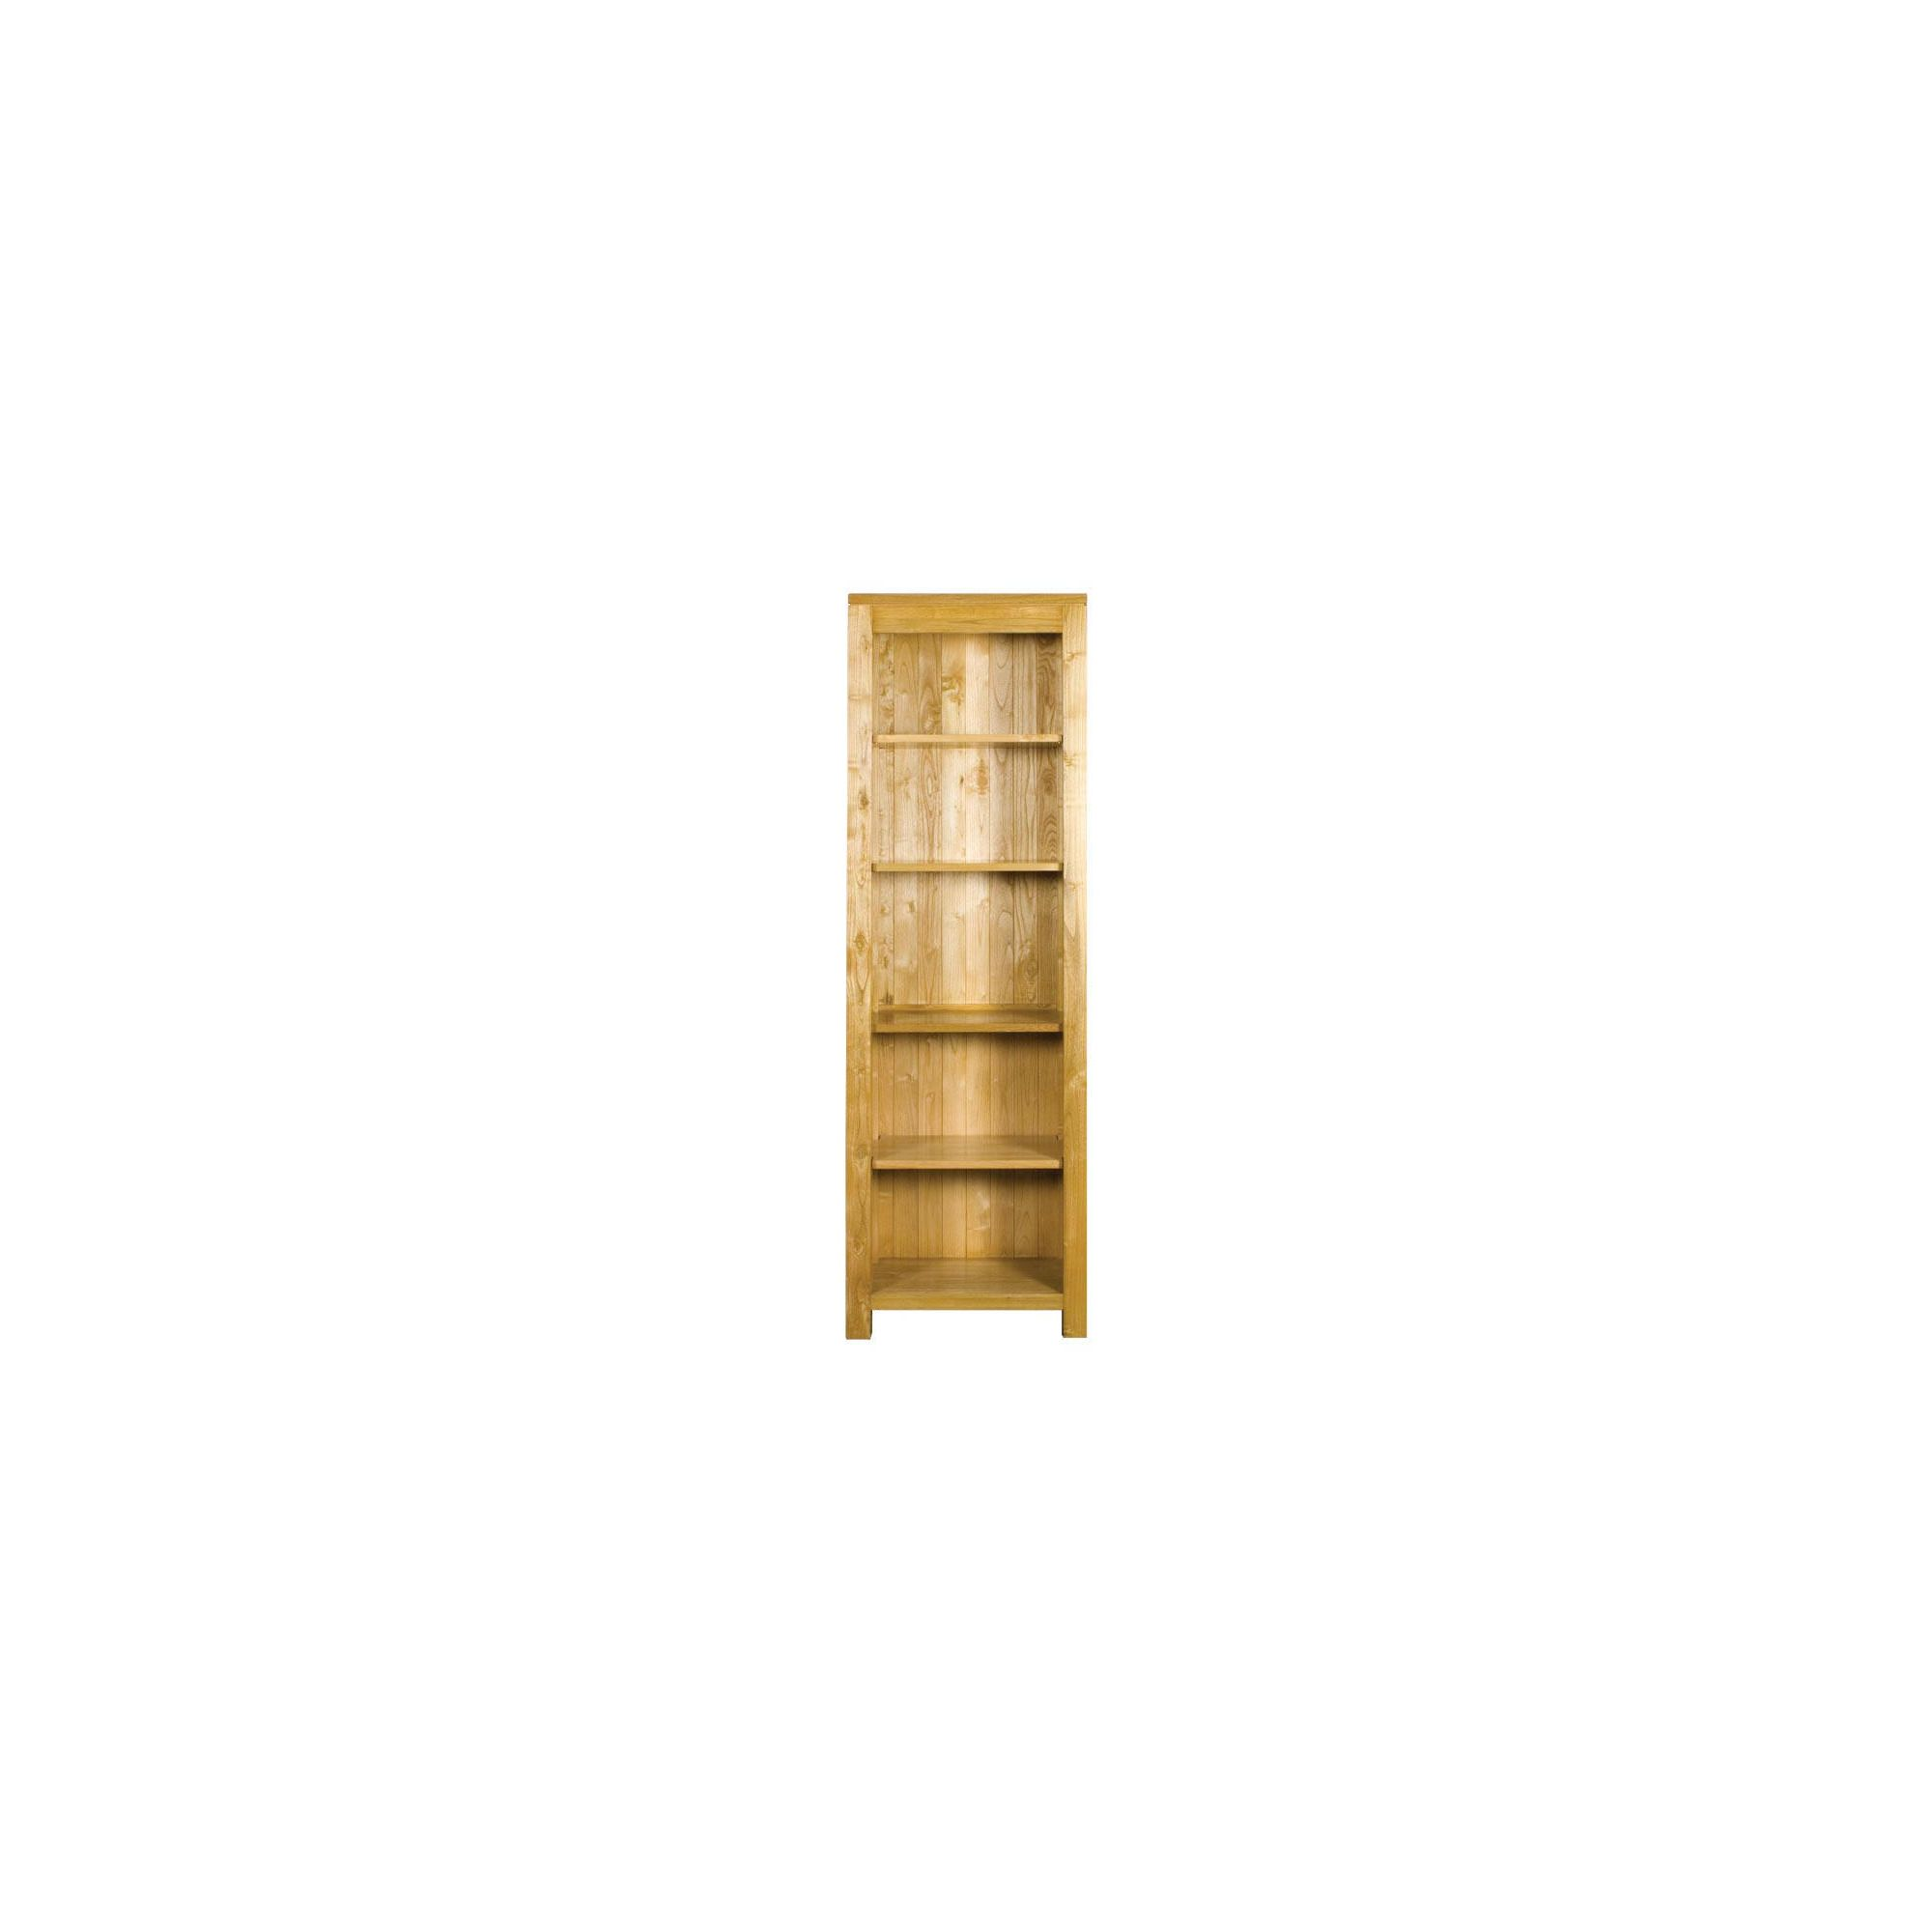 Alterton Furniture Milan Tall Bookcase at Tesco Direct